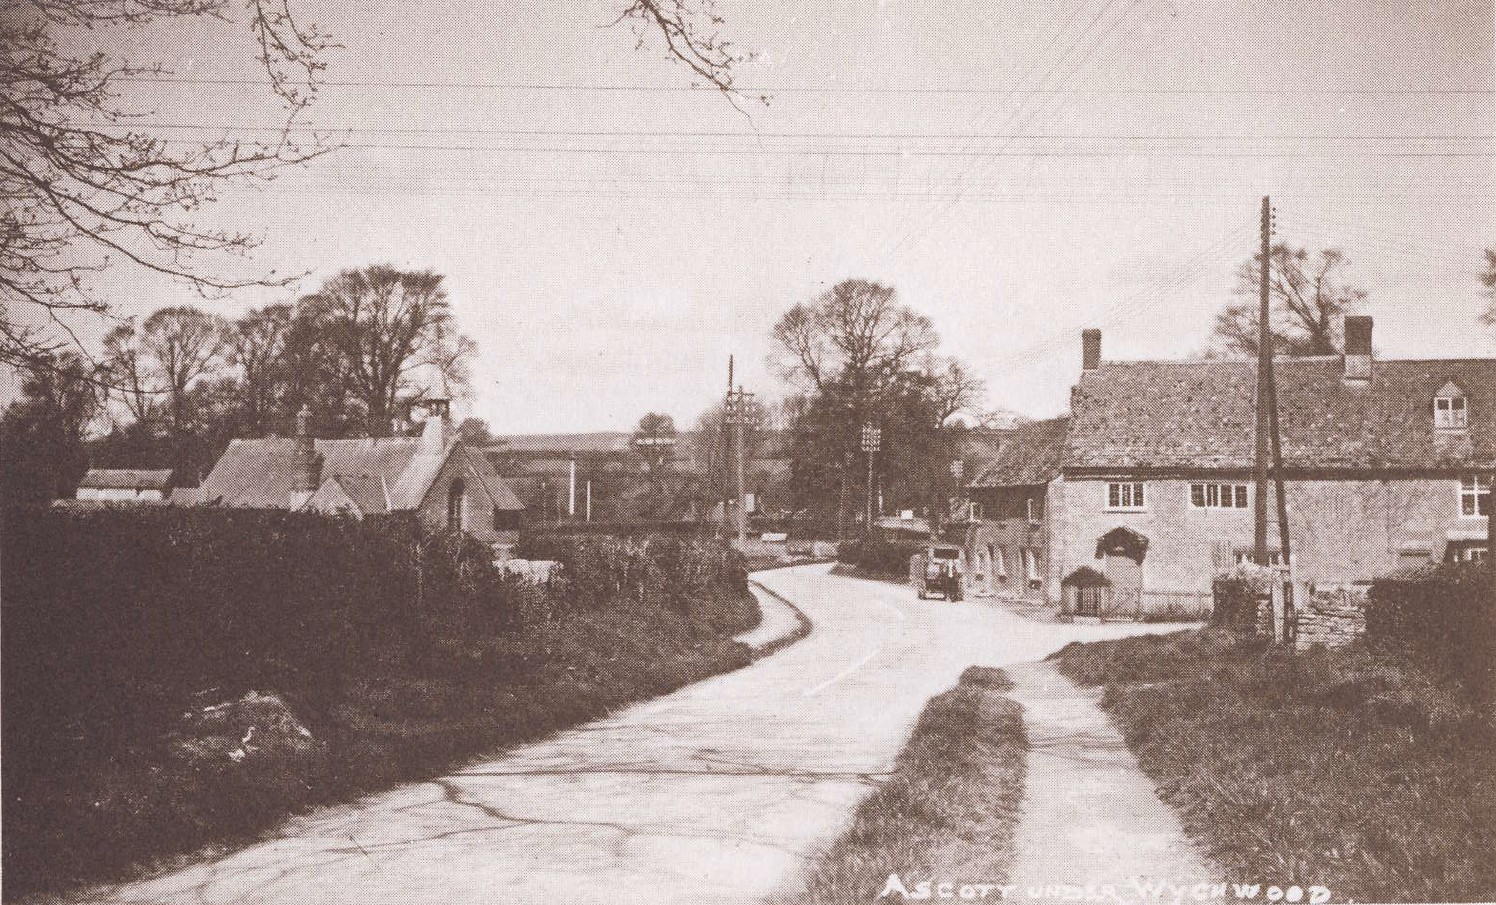 A-u-W London Lane - mid 1900s